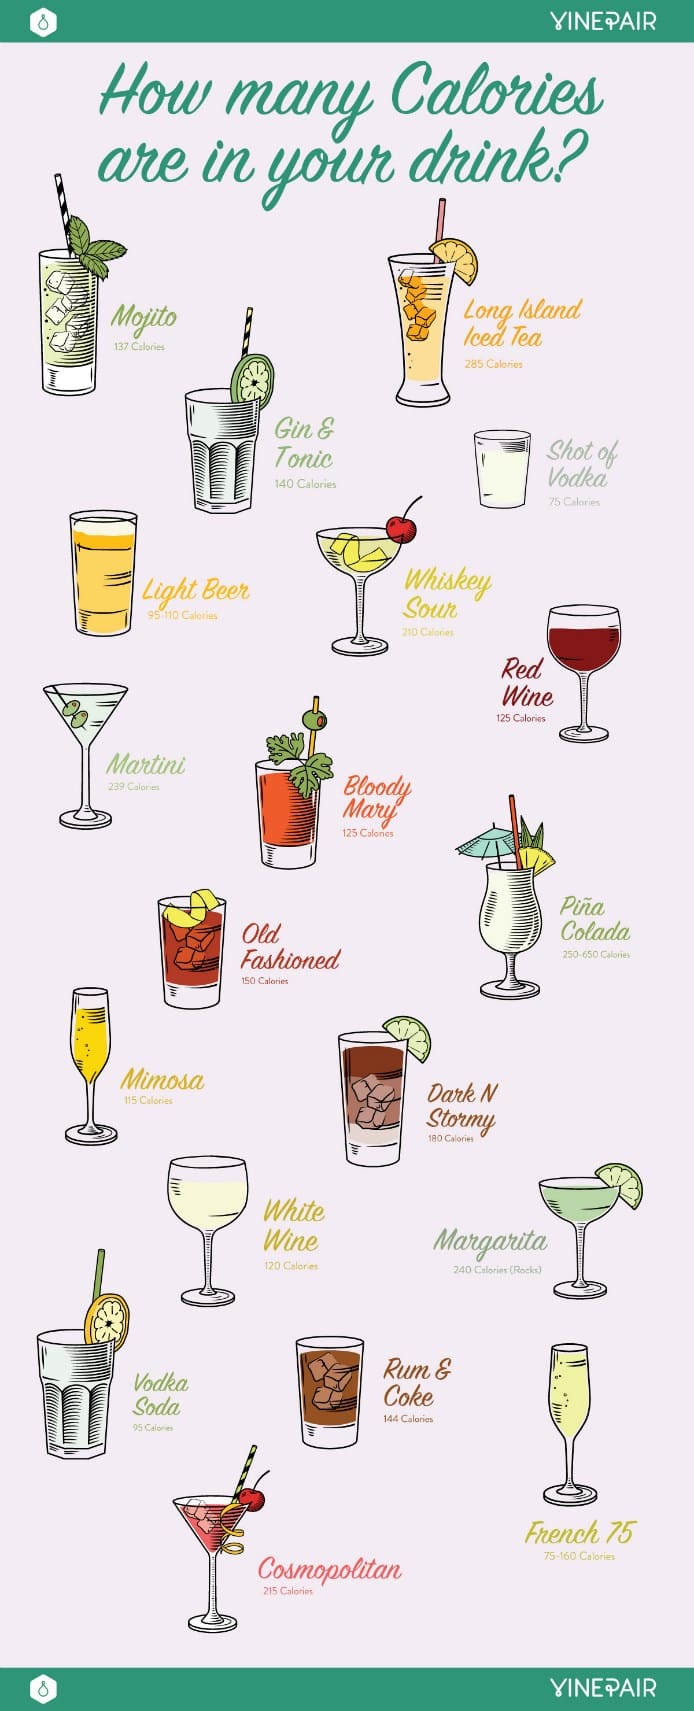 alcoholic-drinks-calories-infographic